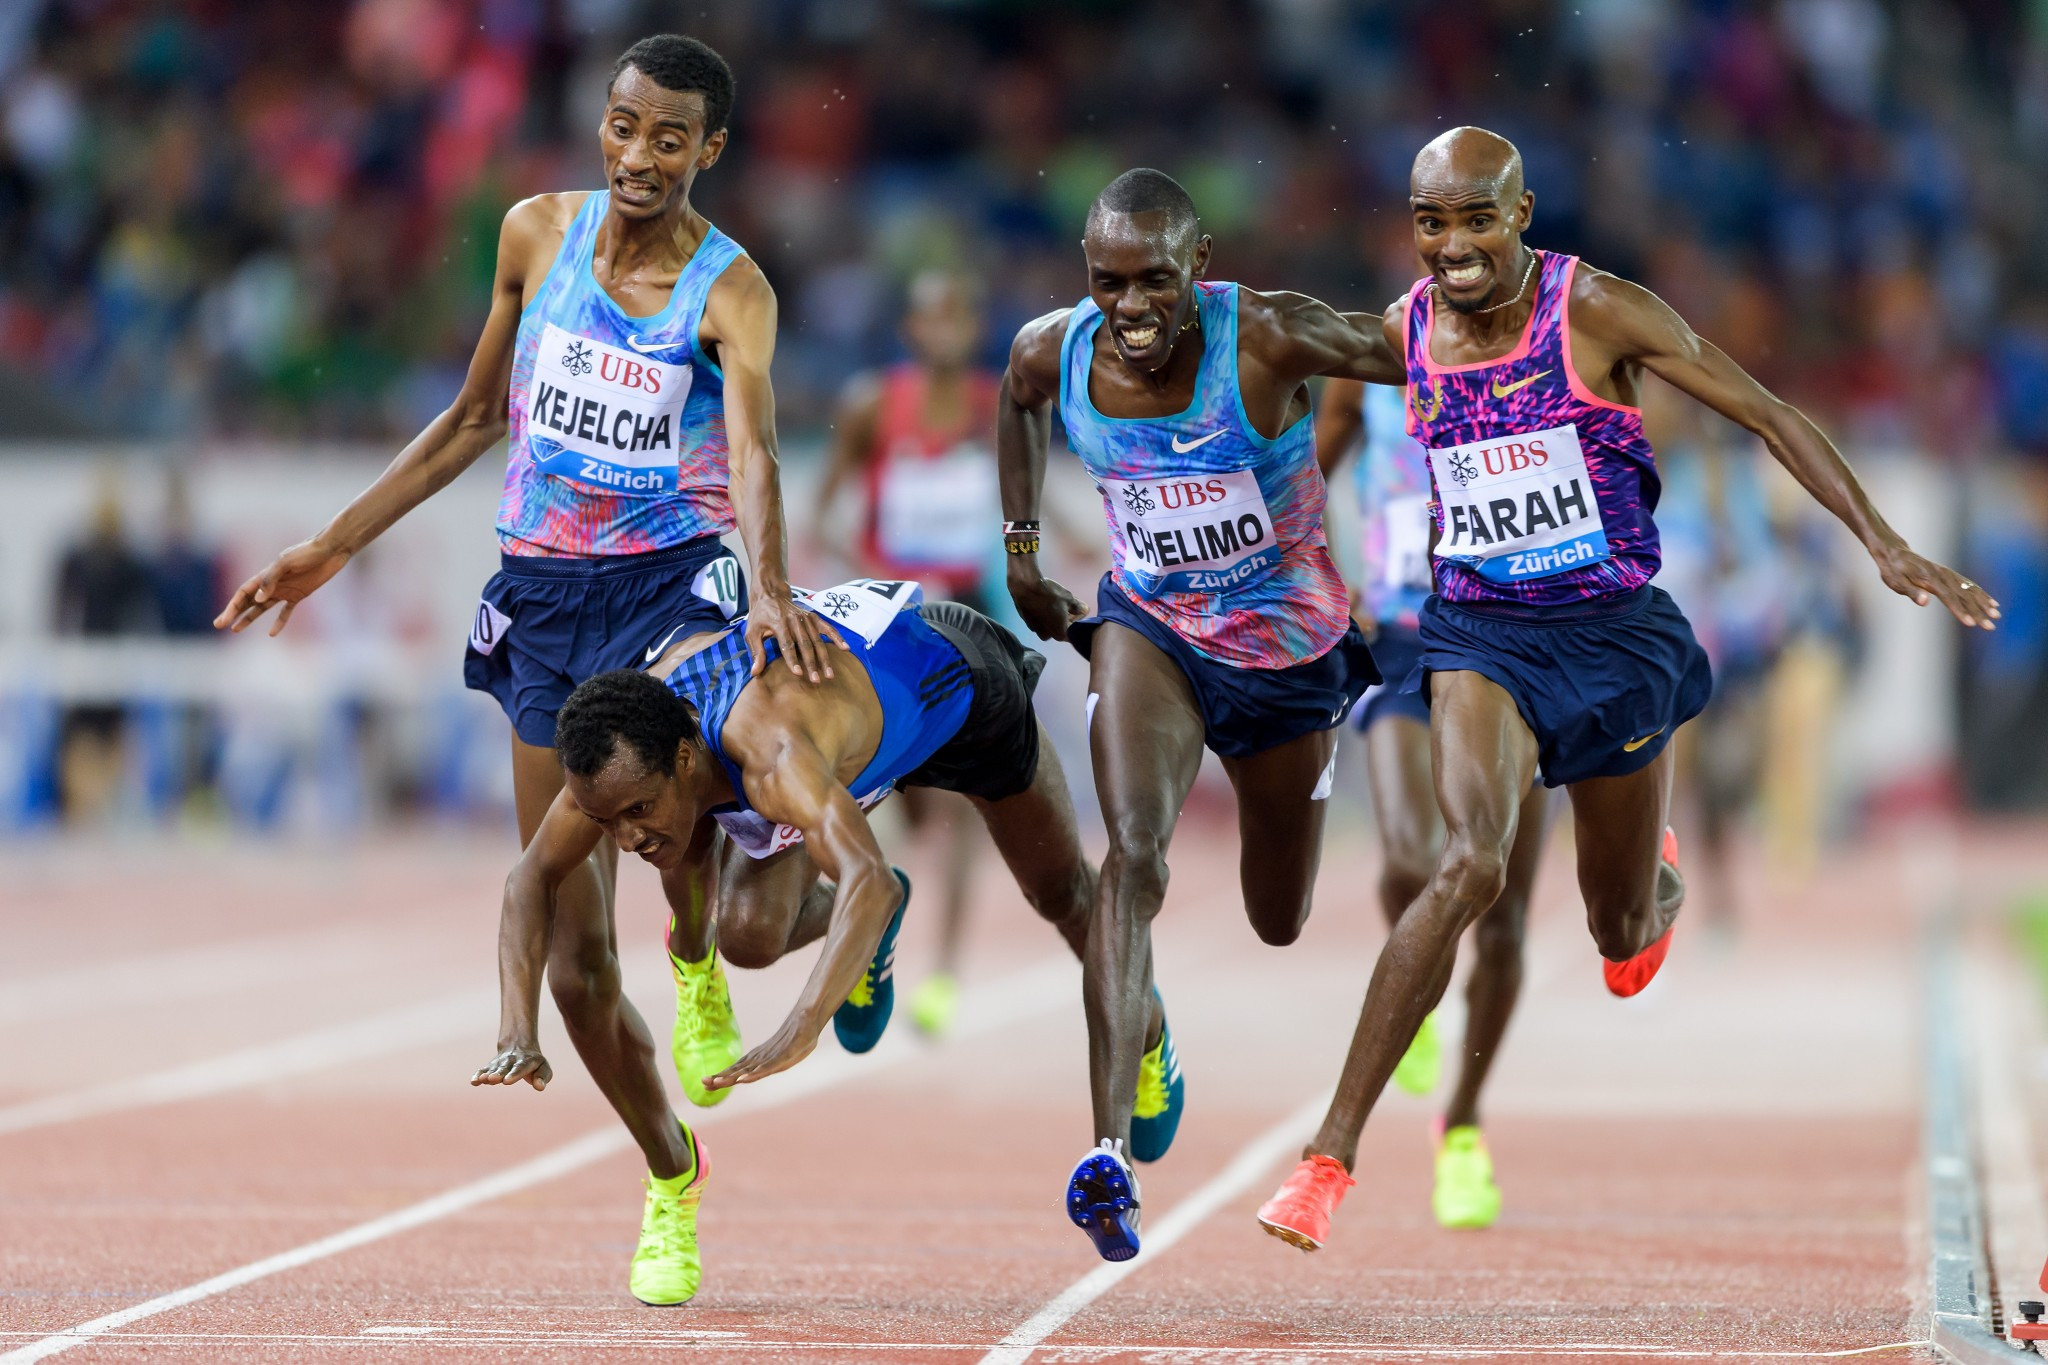 Farah's closest race? The 34-year-old Briton ended his track career with a - narrow - win at the IAAF Diamond League final in Zurich ©Getty Images